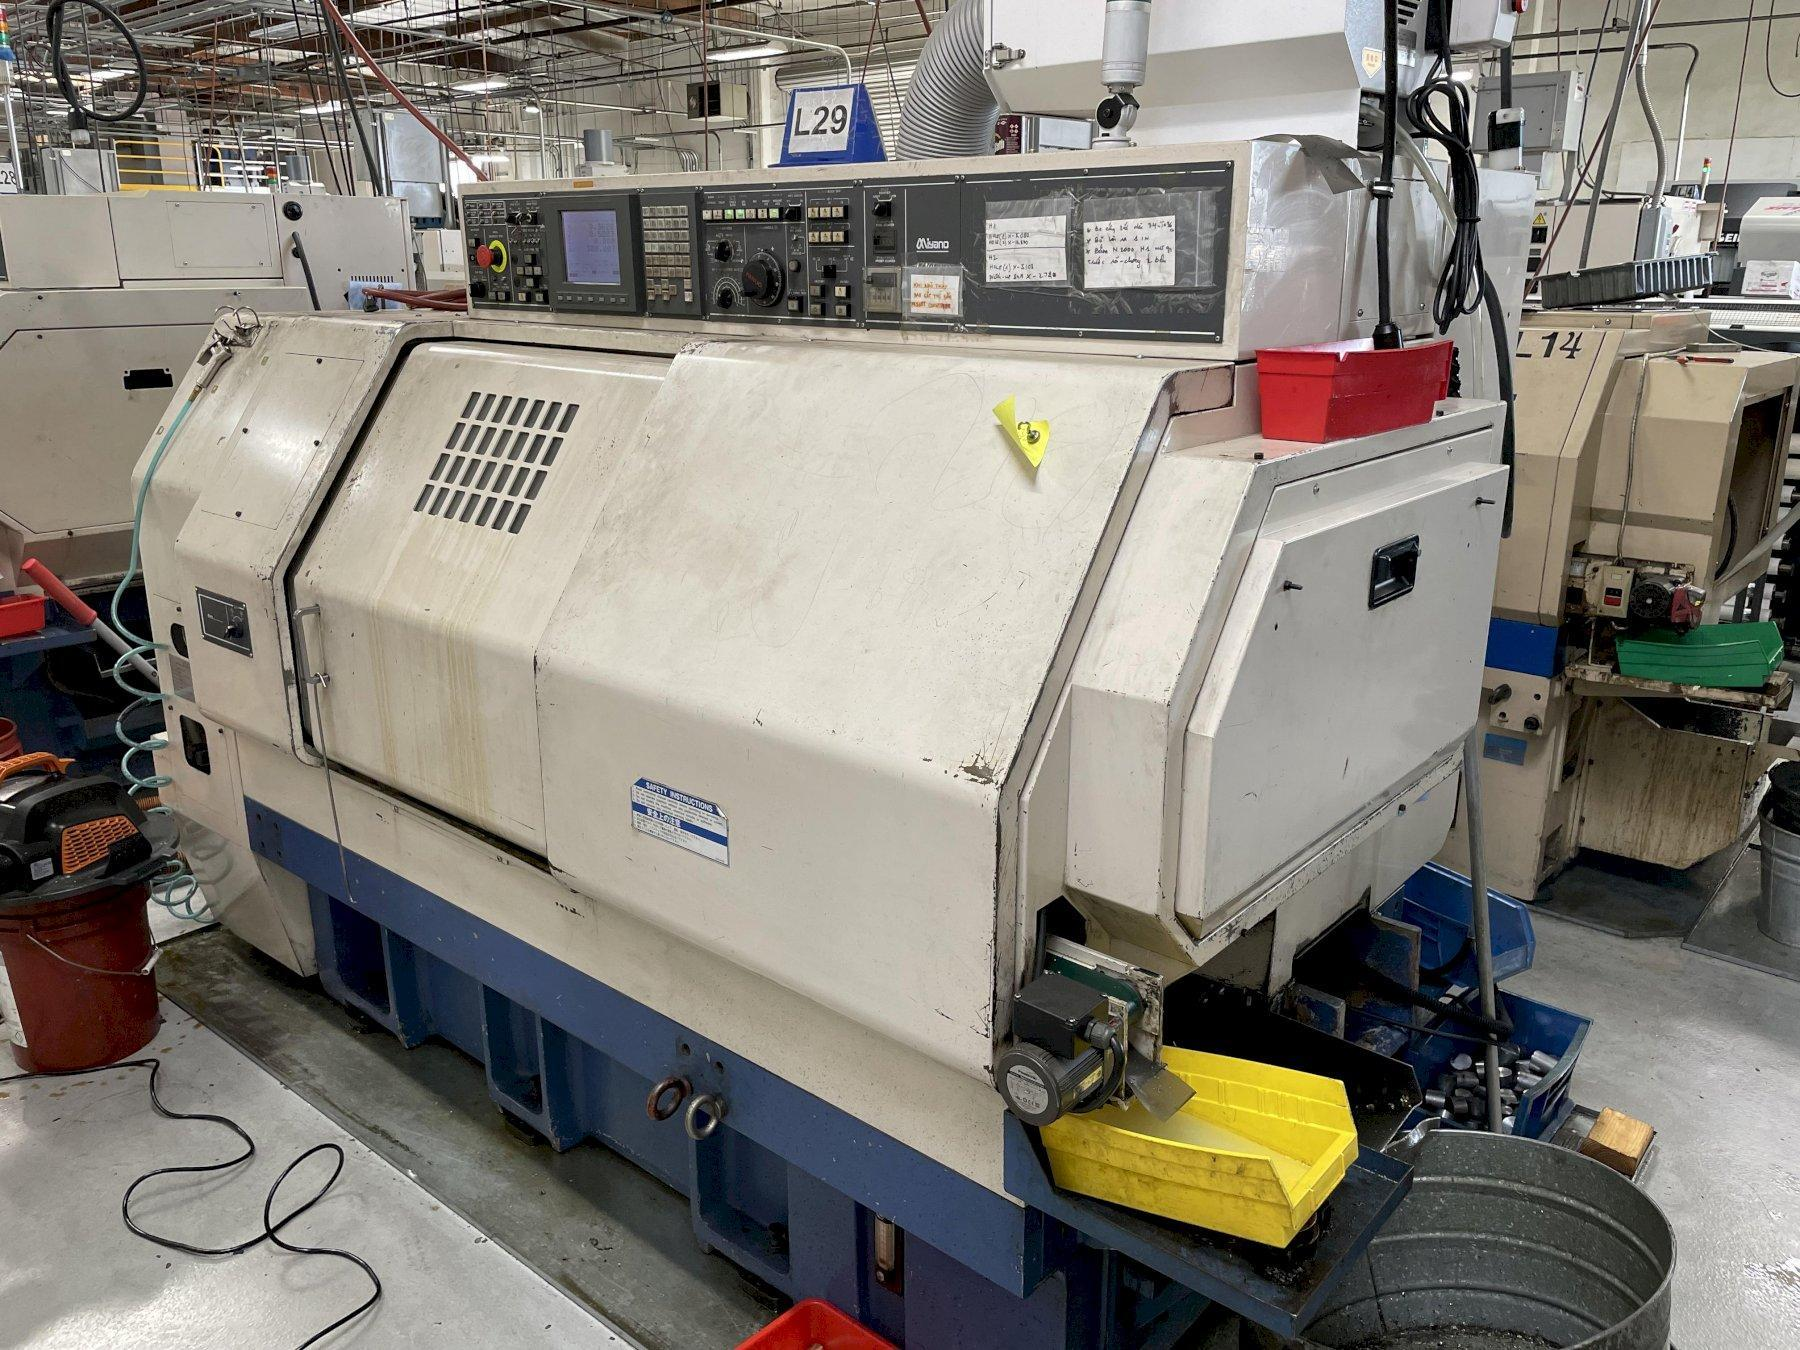 Miyano BNJ-42S Multi-Axis CNC Lathe 2005 with: Fanuc 18i-TB CNC Control, Live Milling, and Parts Catcher.